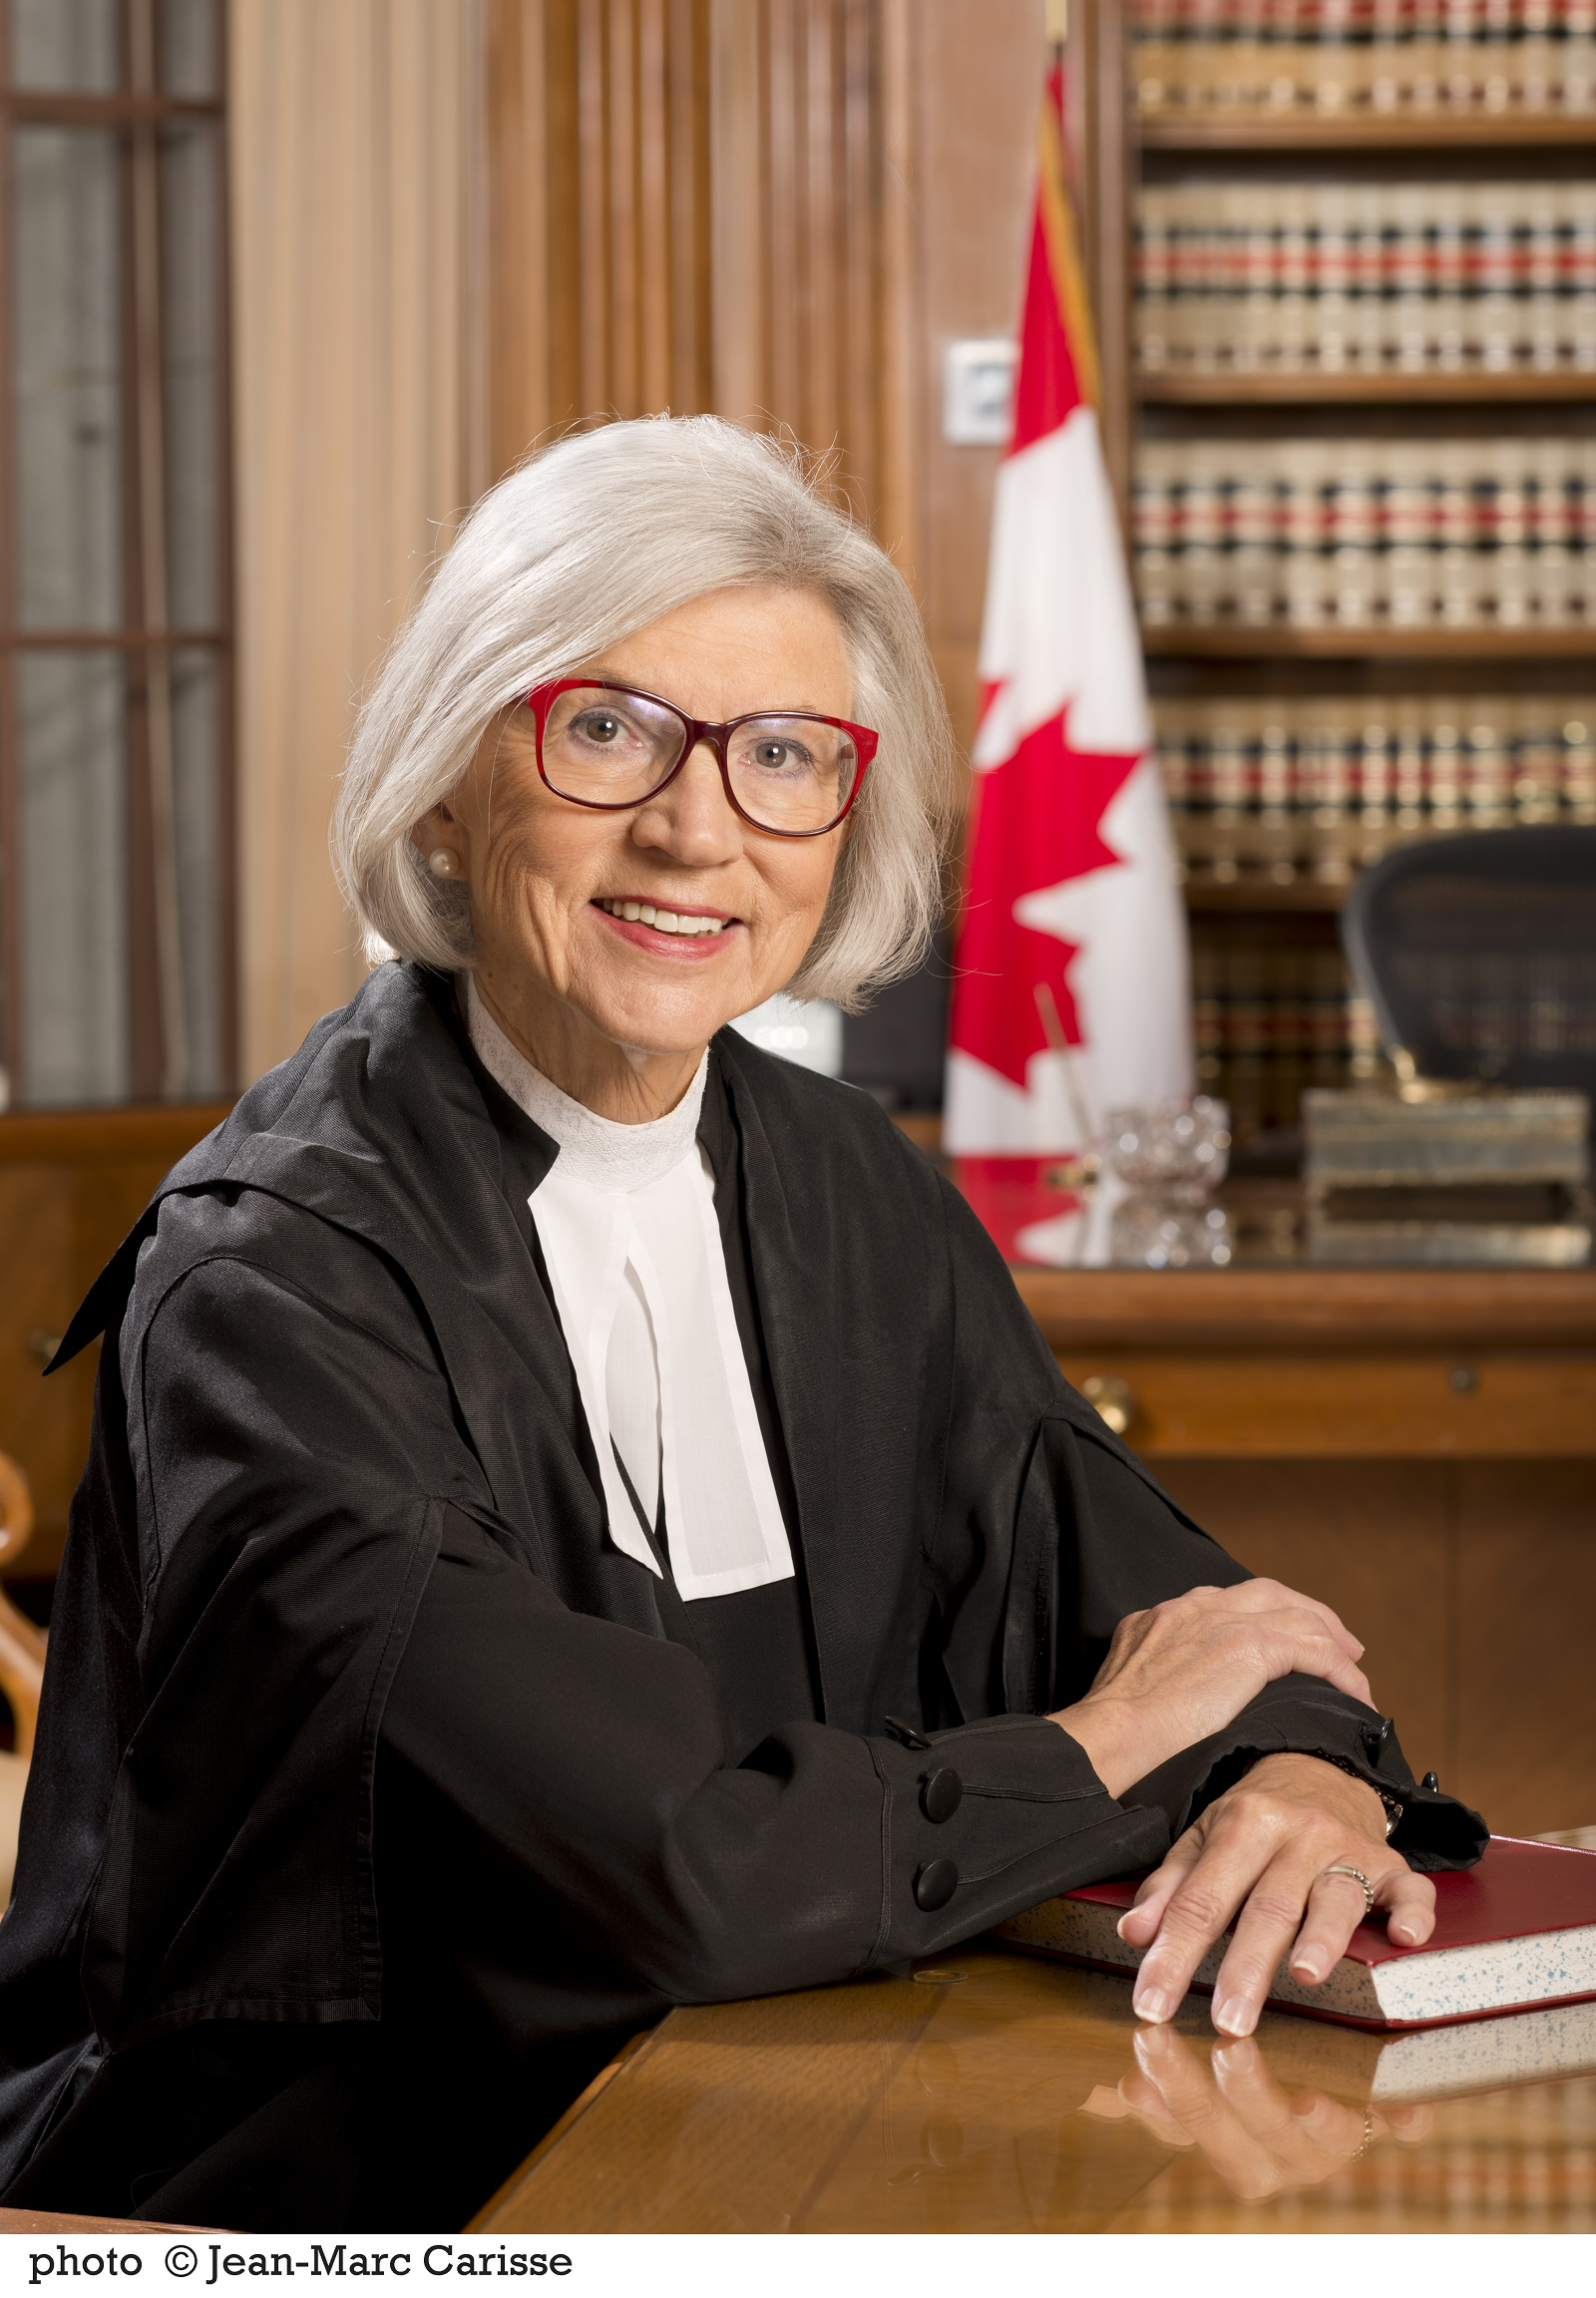 Canadian Chief Justice Beverley McLachlin